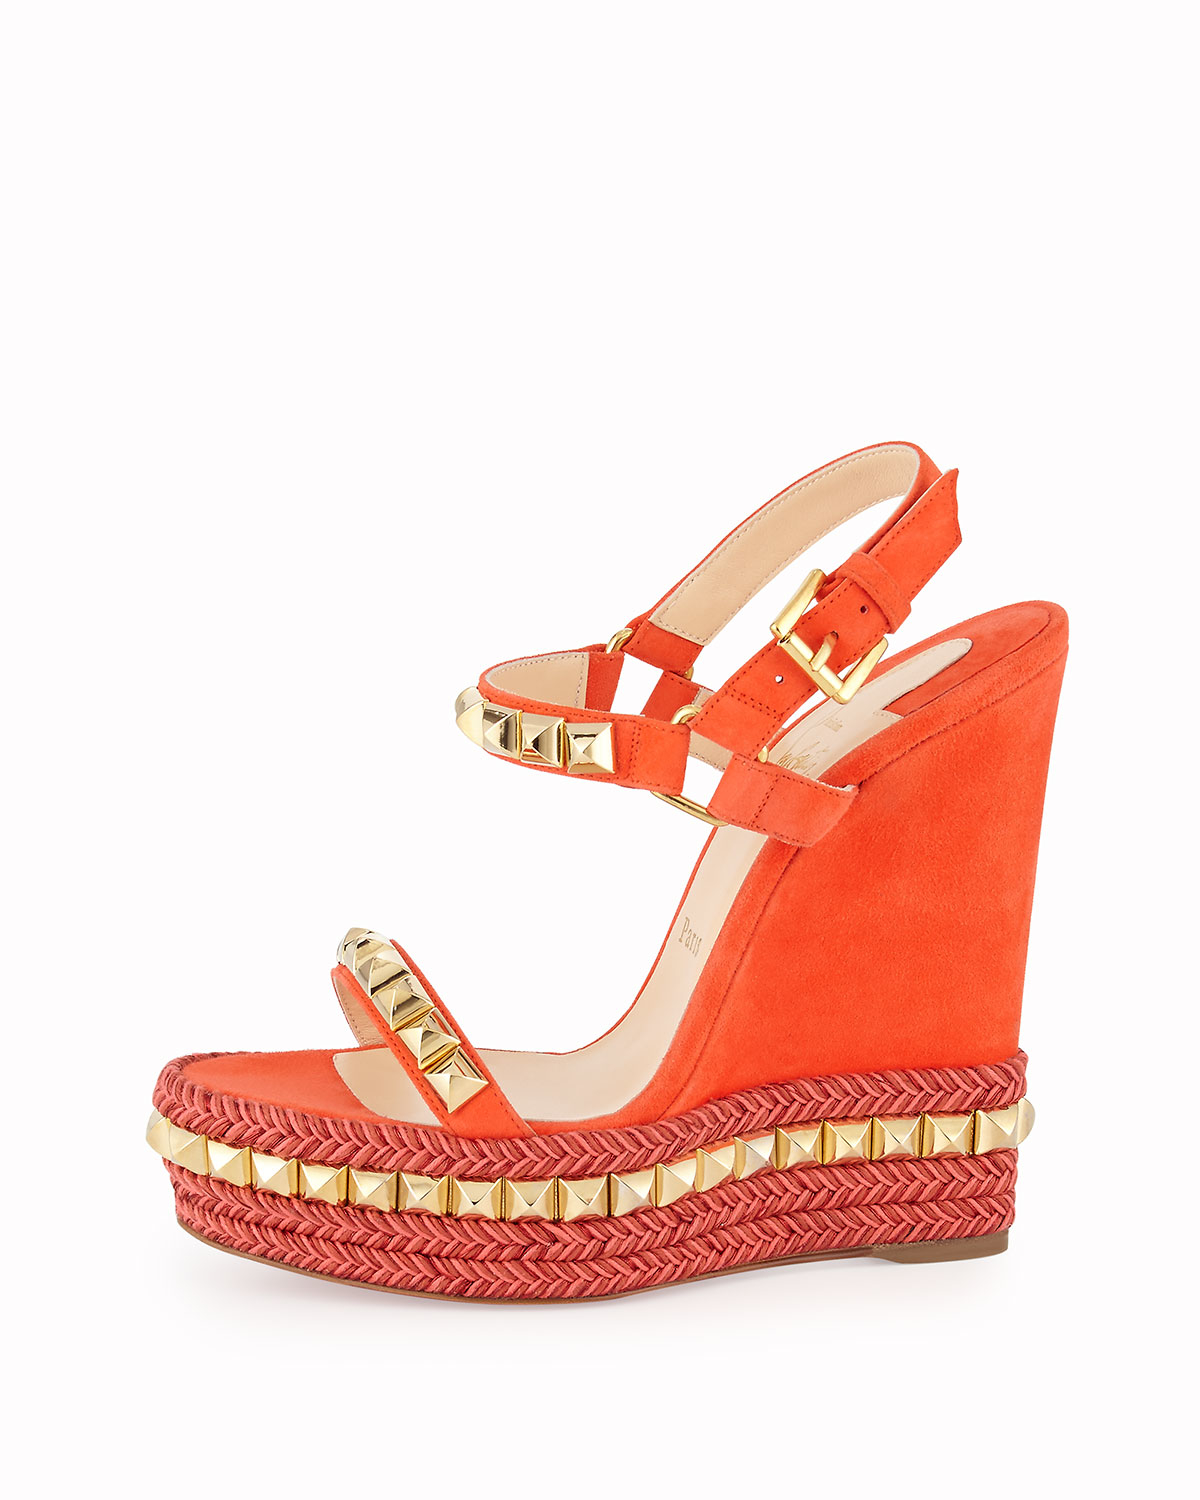 ec3a6d06f43 Christian Louboutin Orange Cataclou Studded Suede Red Sole Wedge Sandal